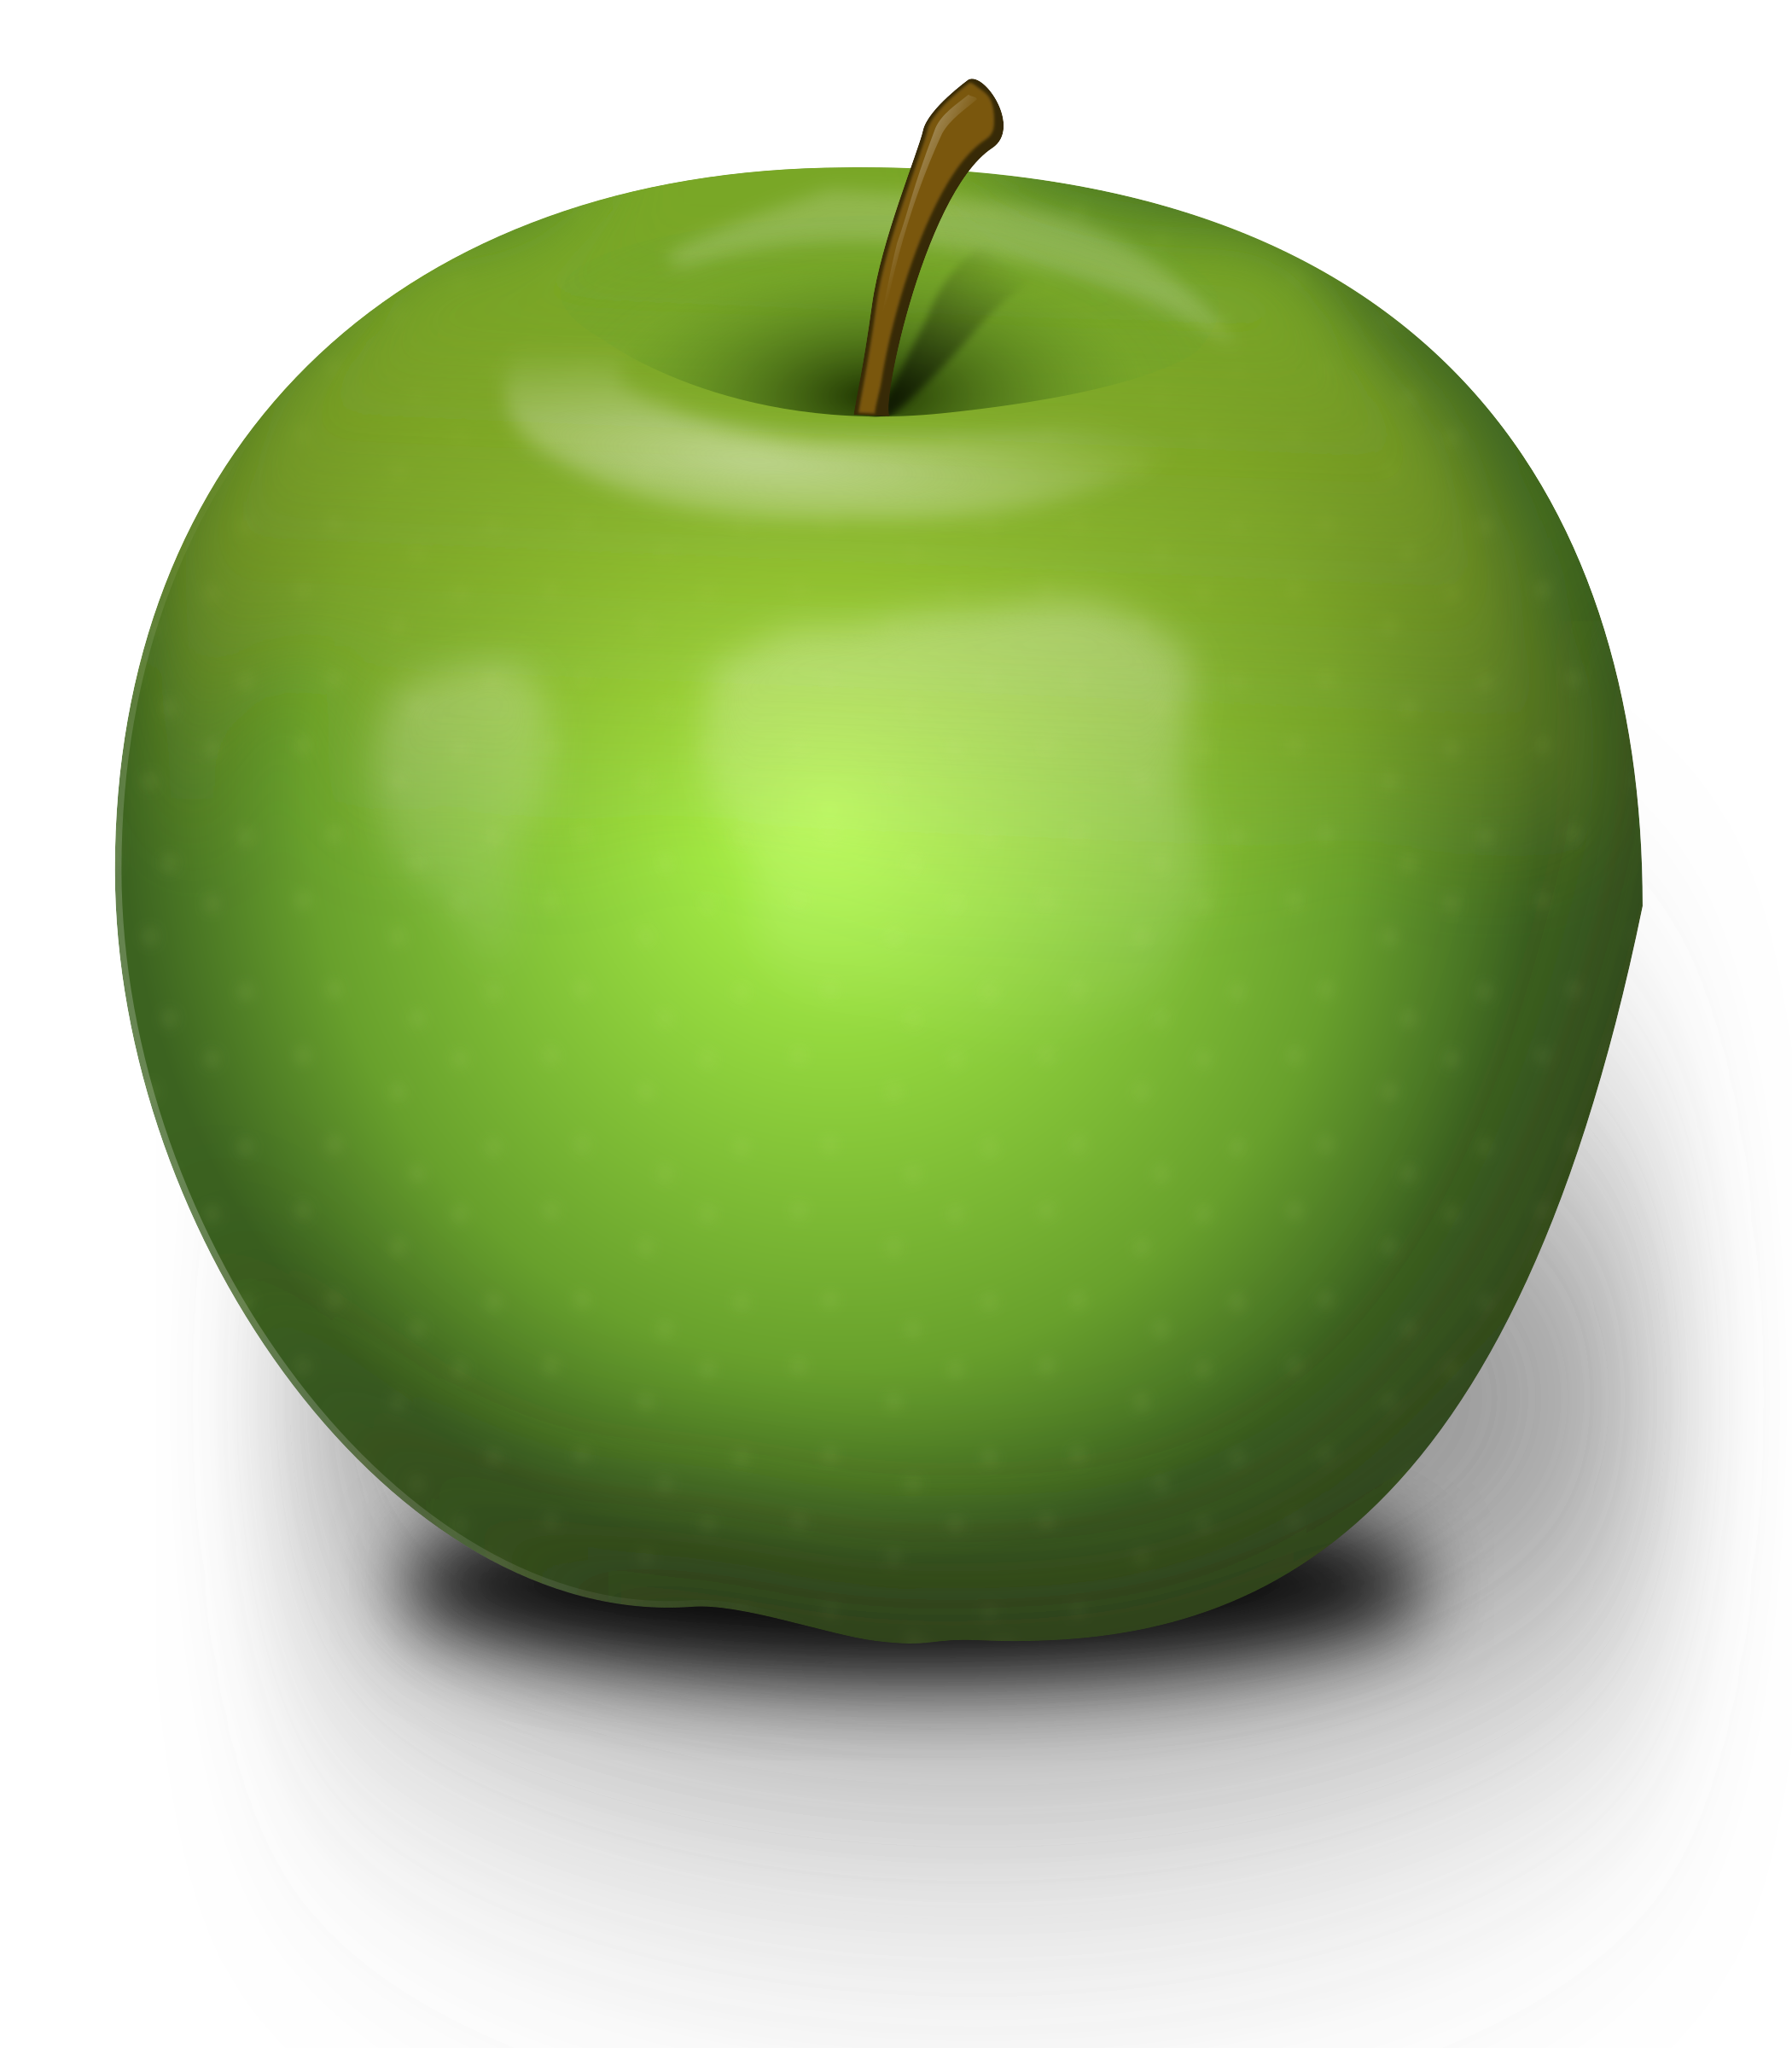 Inside apple clipart graphic royalty free Clipart - Photorealistic Green Apple graphic royalty free